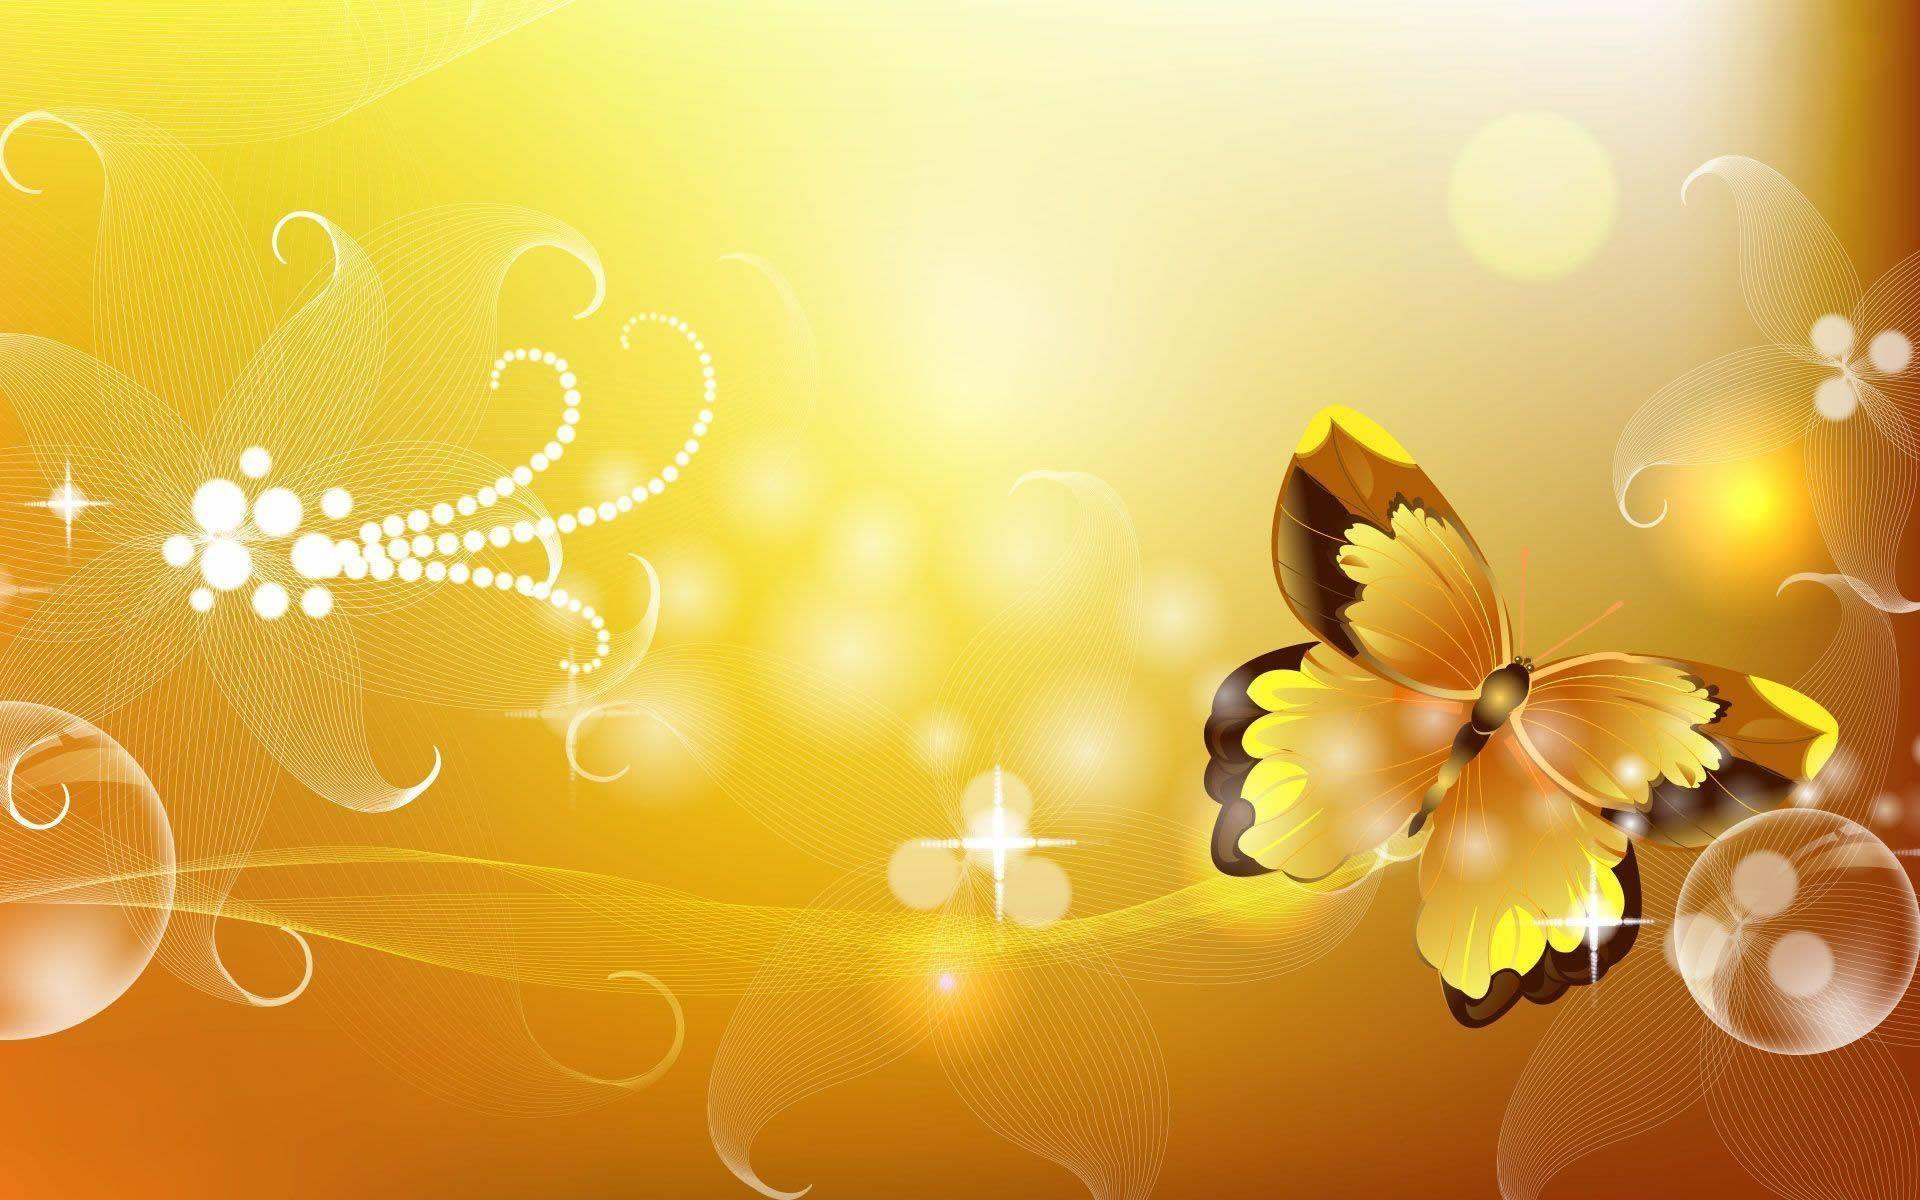 Butterfly Backgrounds Pictures - Wallpaper Cave